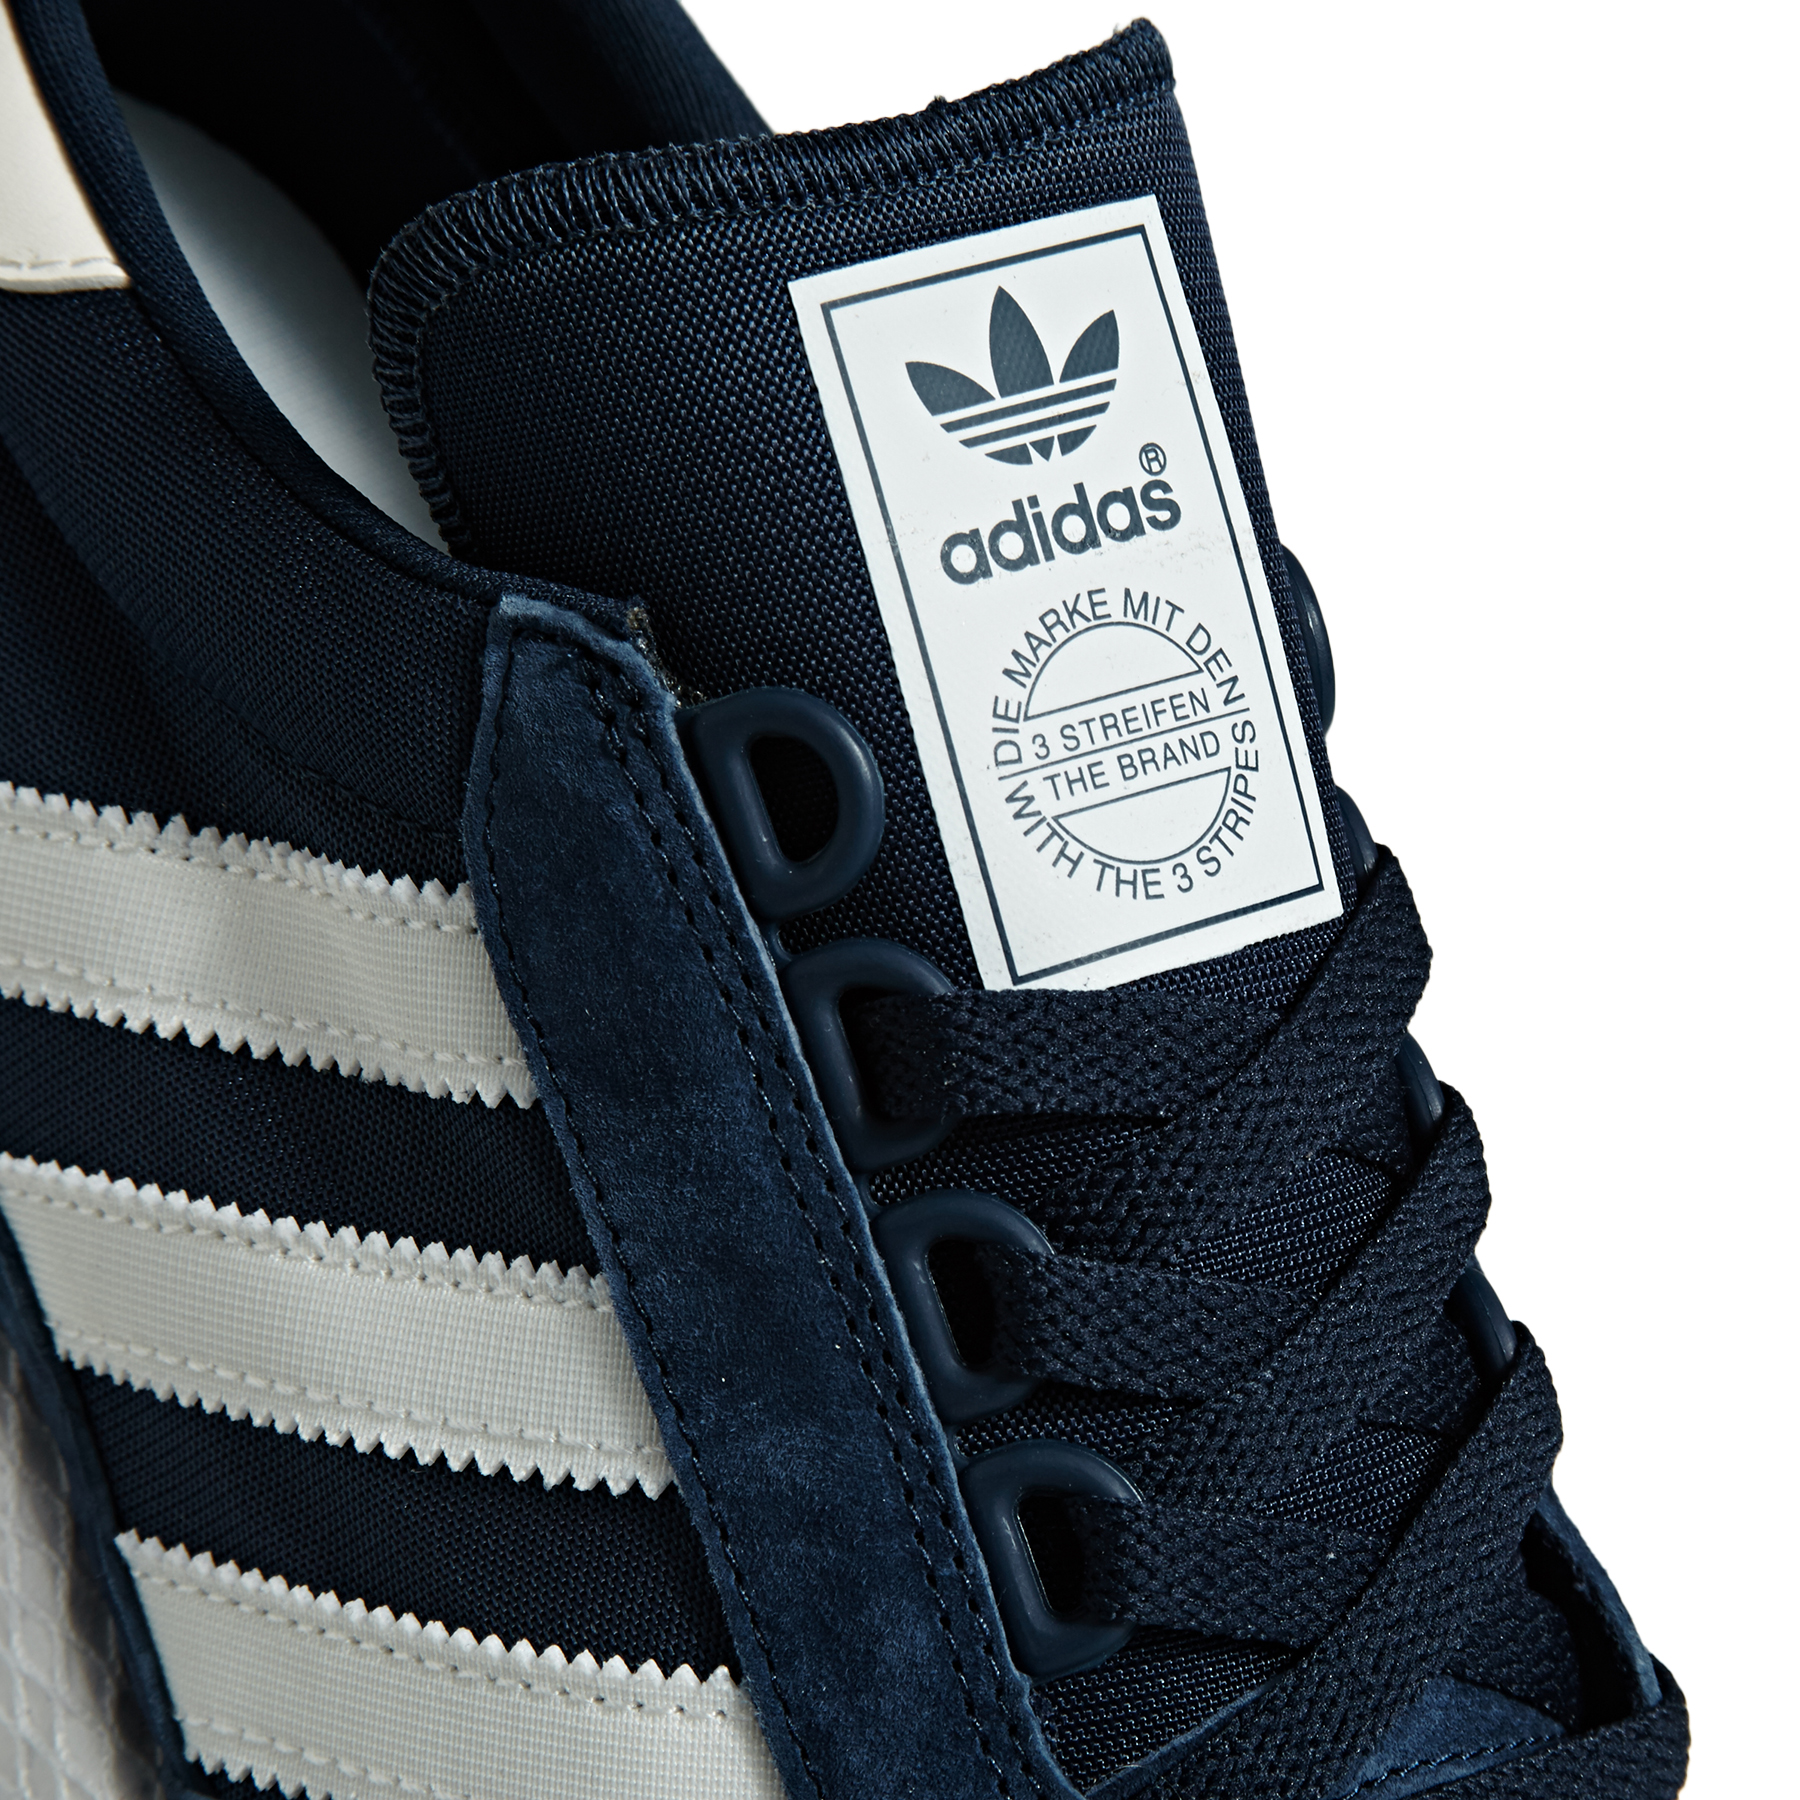 Adidas Originals Forest Grove Shoes | Free Delivery Options